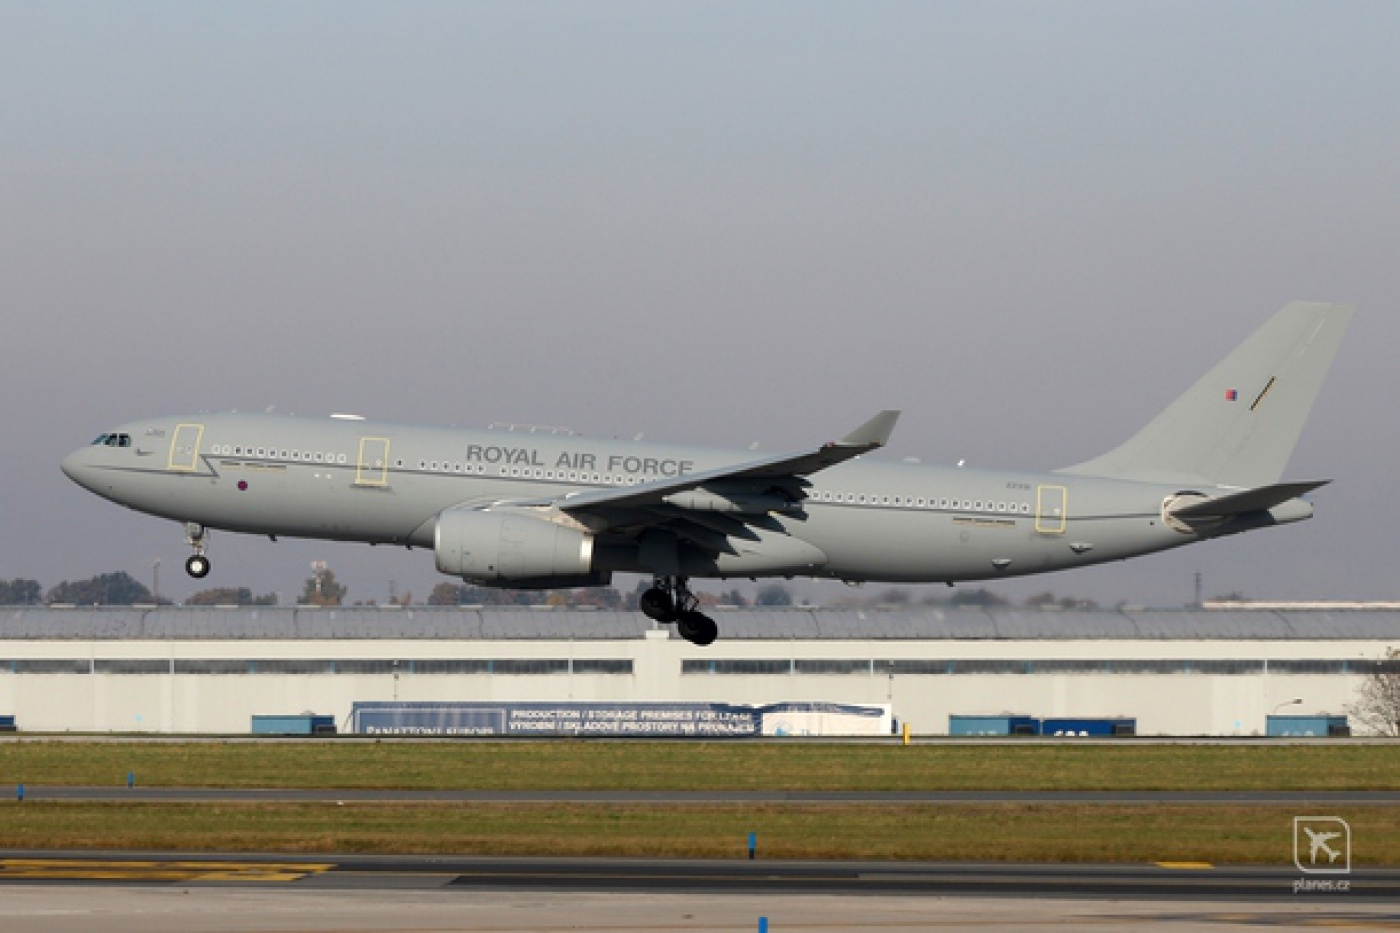 voyager-kc2-zz331-royal-air-force-rrr-rr-prague-ruzyne-prg-lkpr